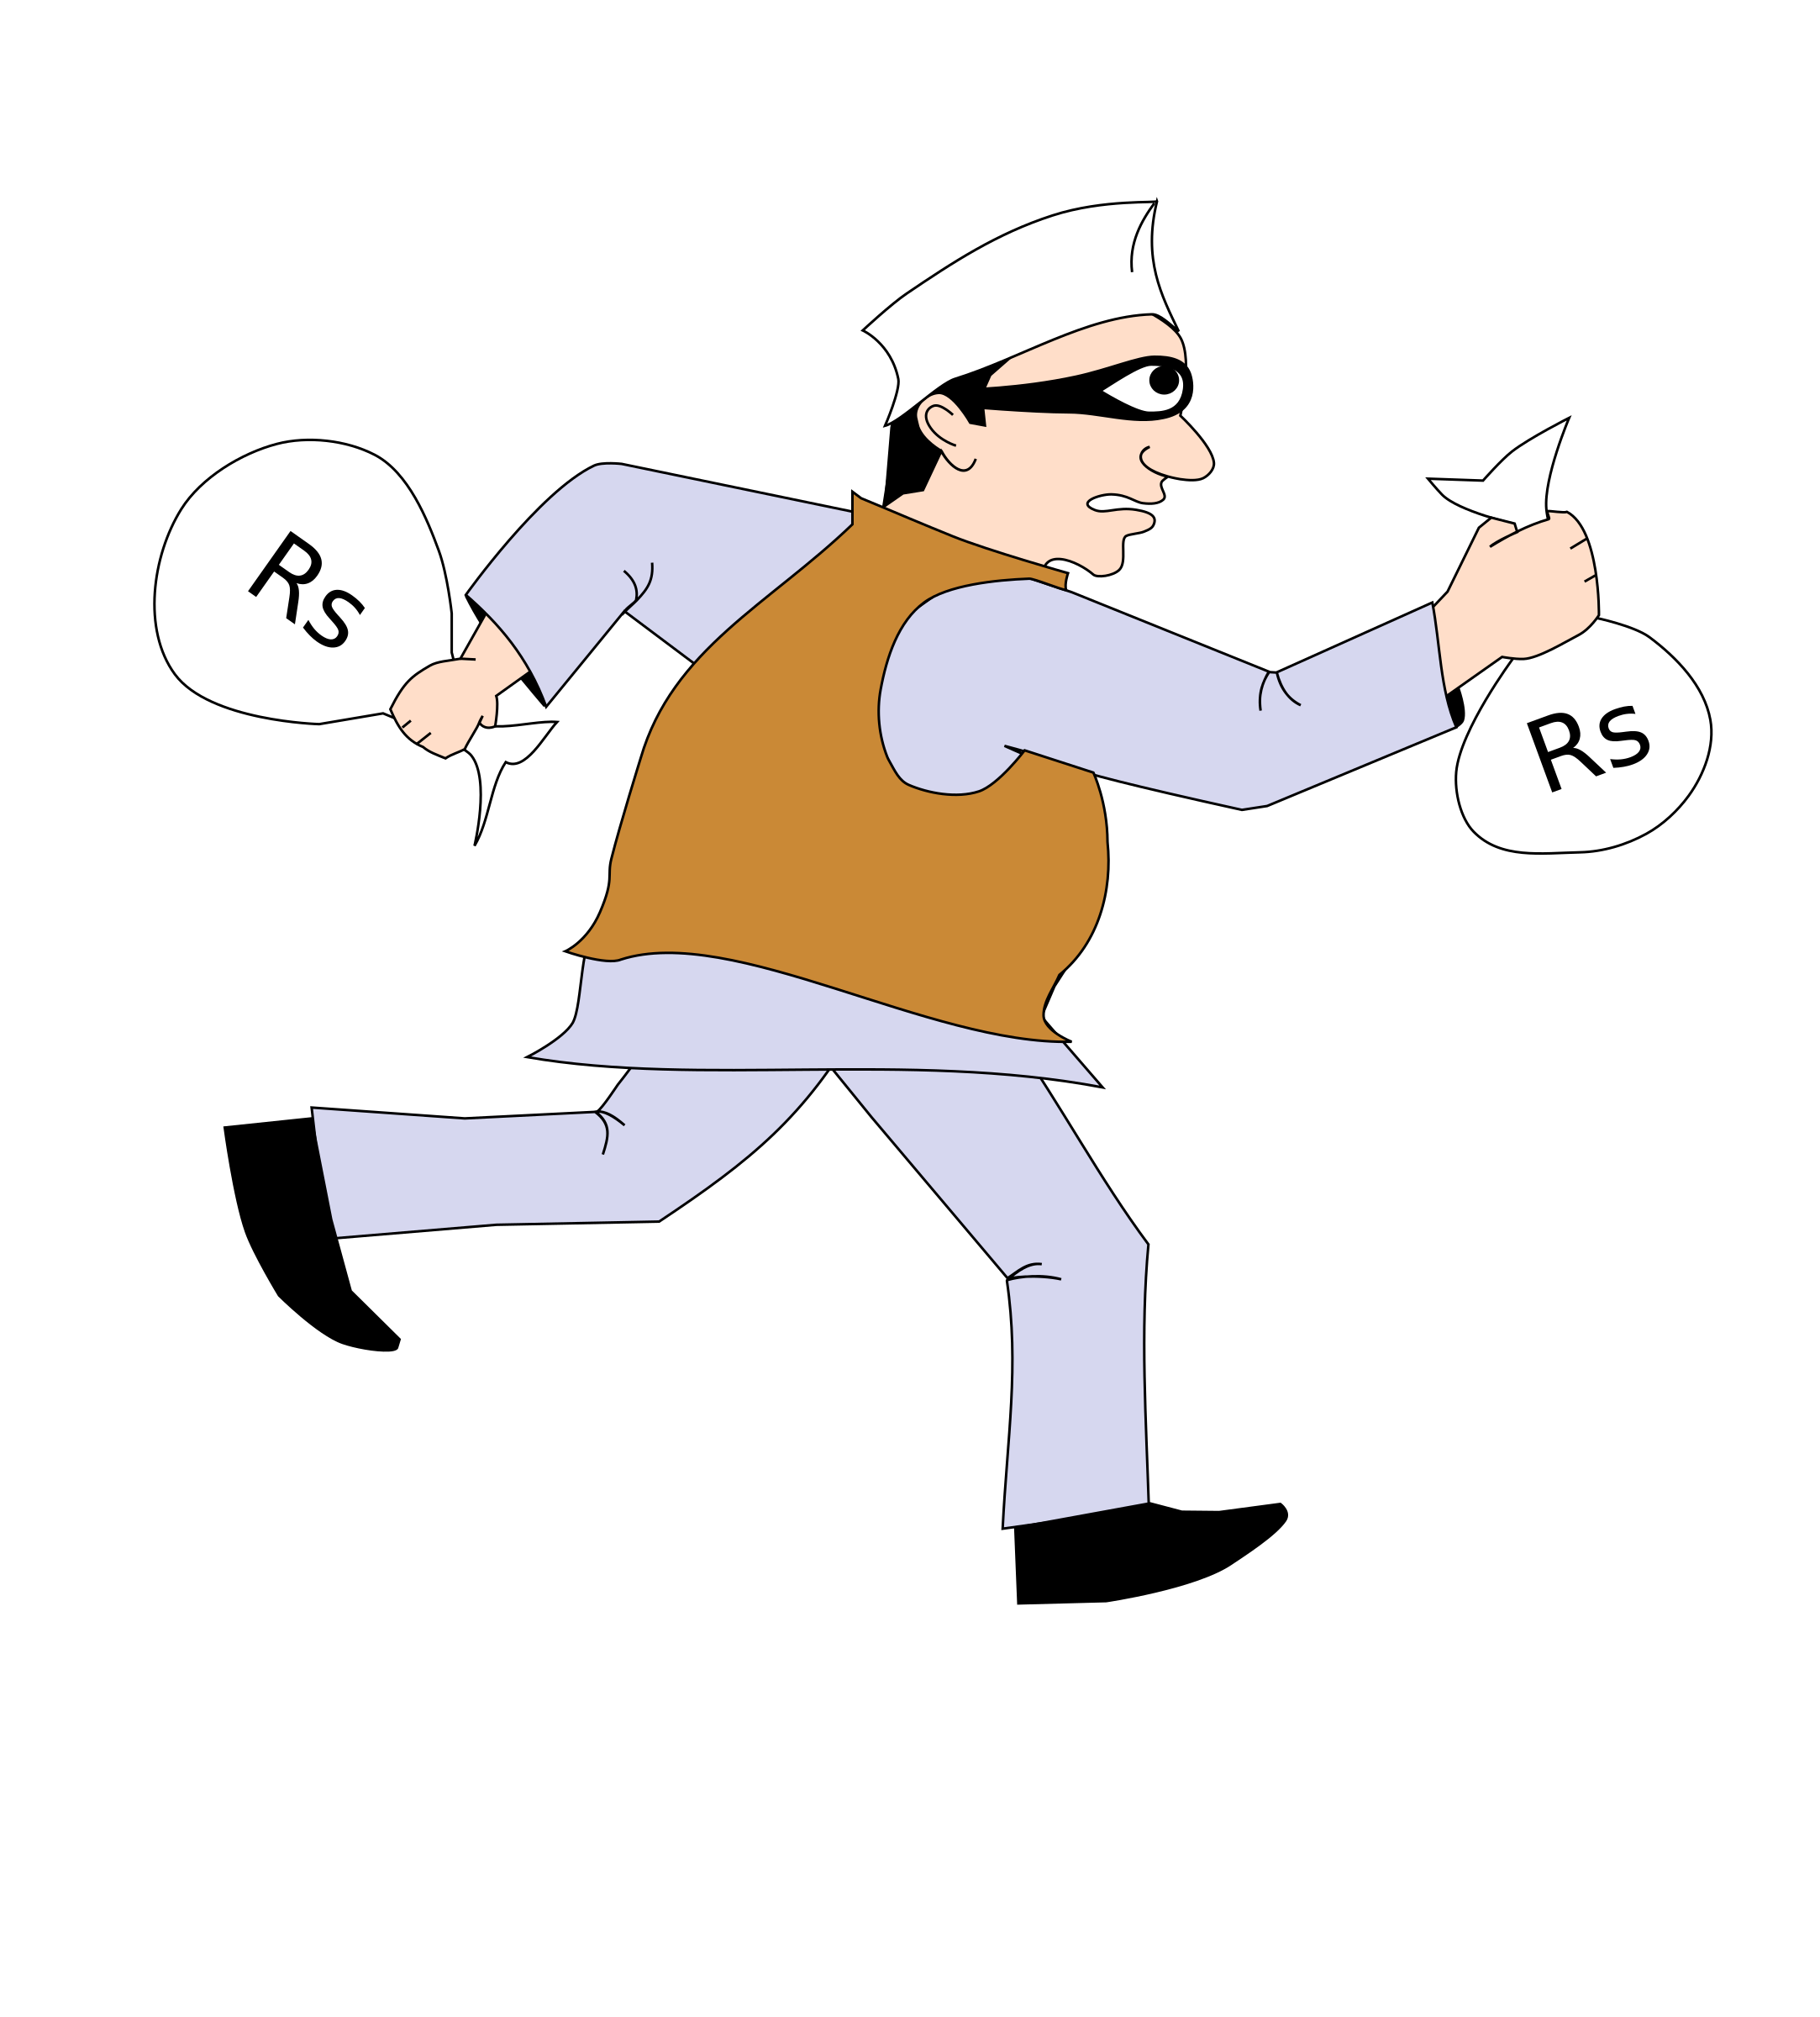 vector library library Politician clipart. Corrupt big image png